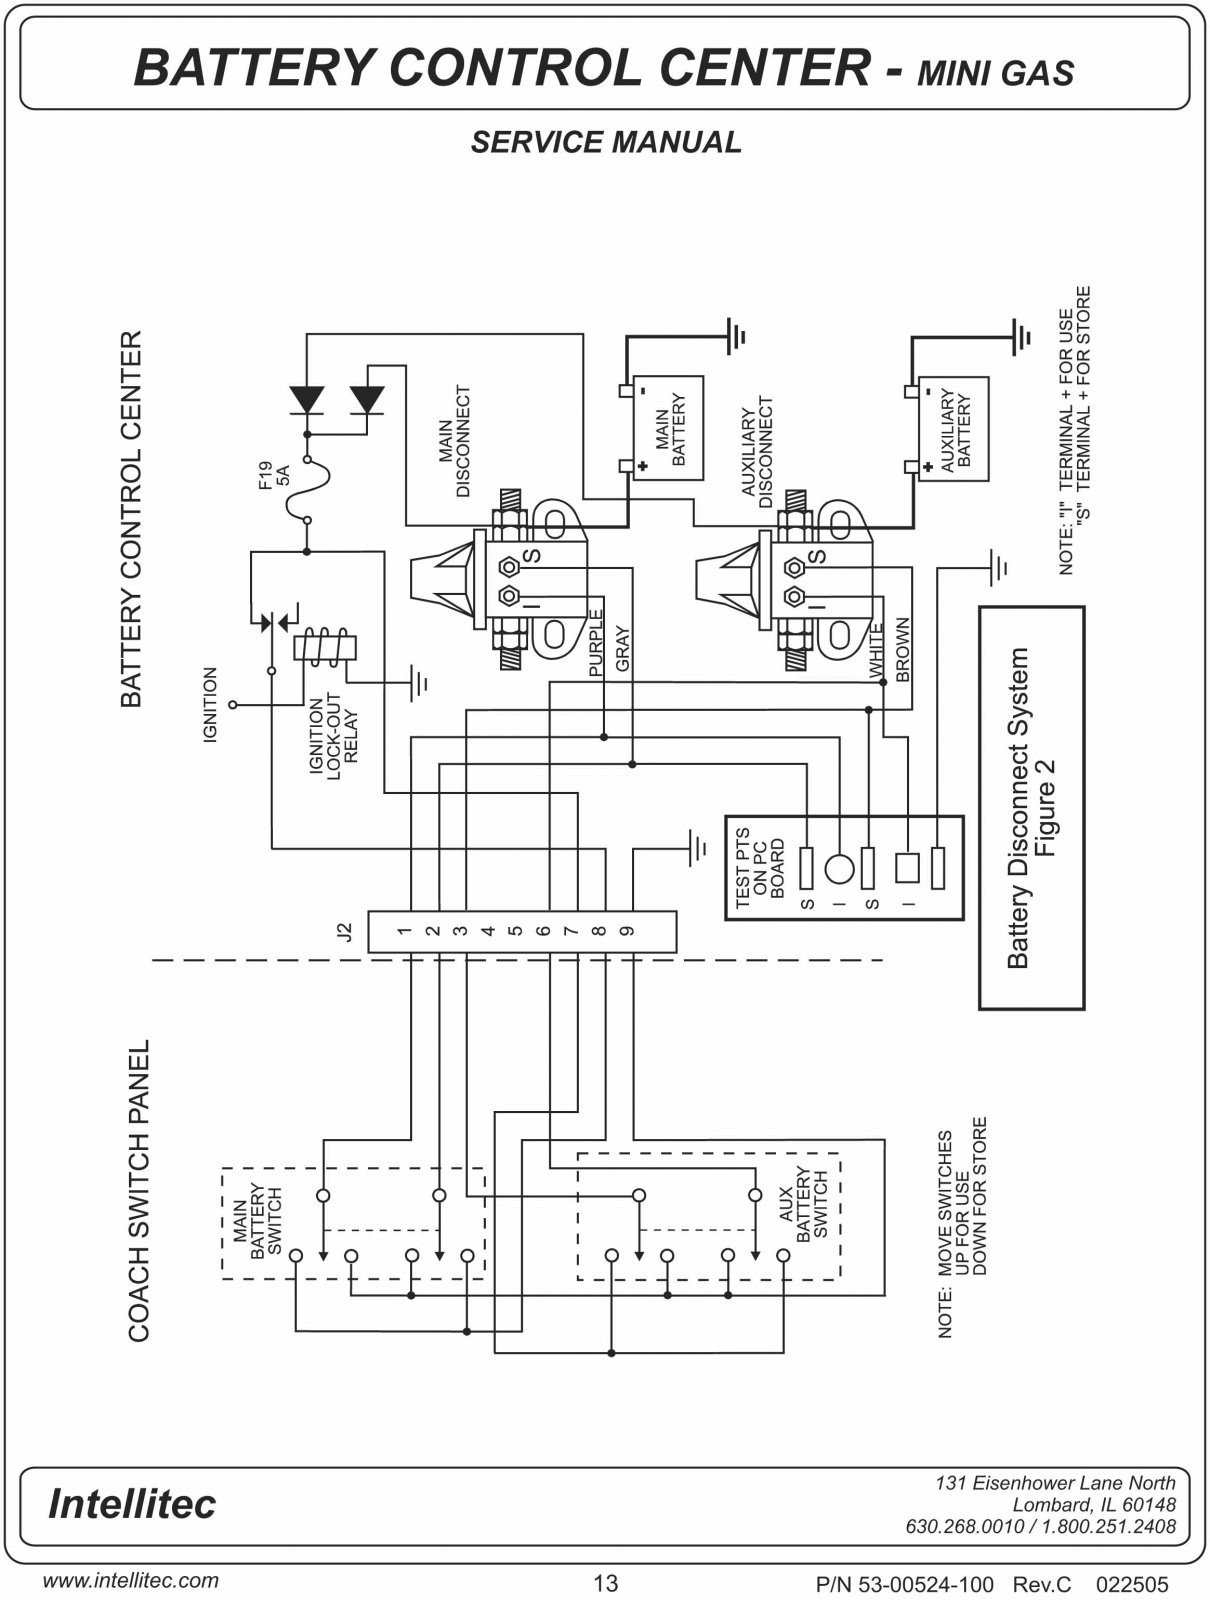 intellitec model 620 wiring diagram wire center \u2022 electrical schematic diagrams intellitec wiring diagram wiring info u2022 rh defentic co house electrical wiring diagrams westinghouse monitor l2046nv